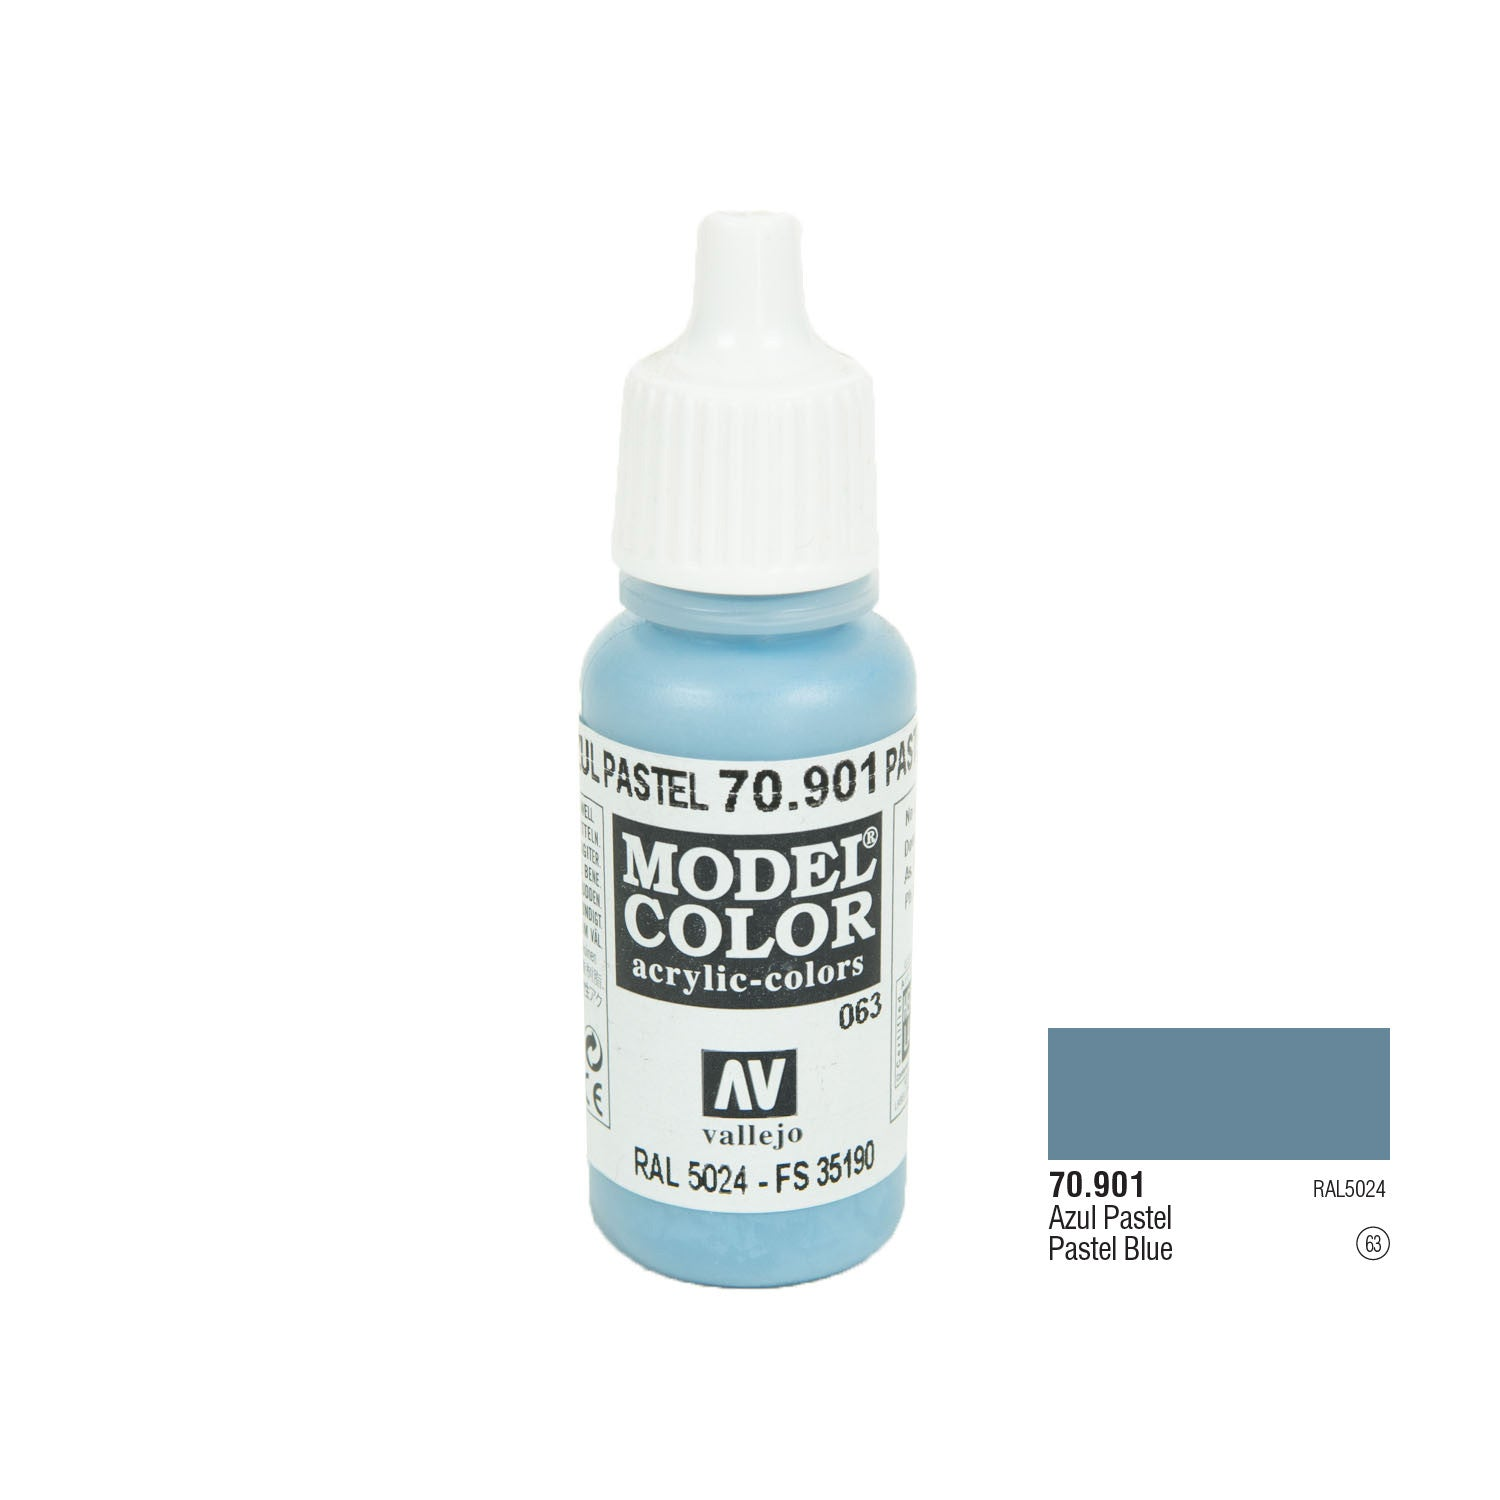 Vallejo 70.901 Model Color: Pastel Blue, 17ml